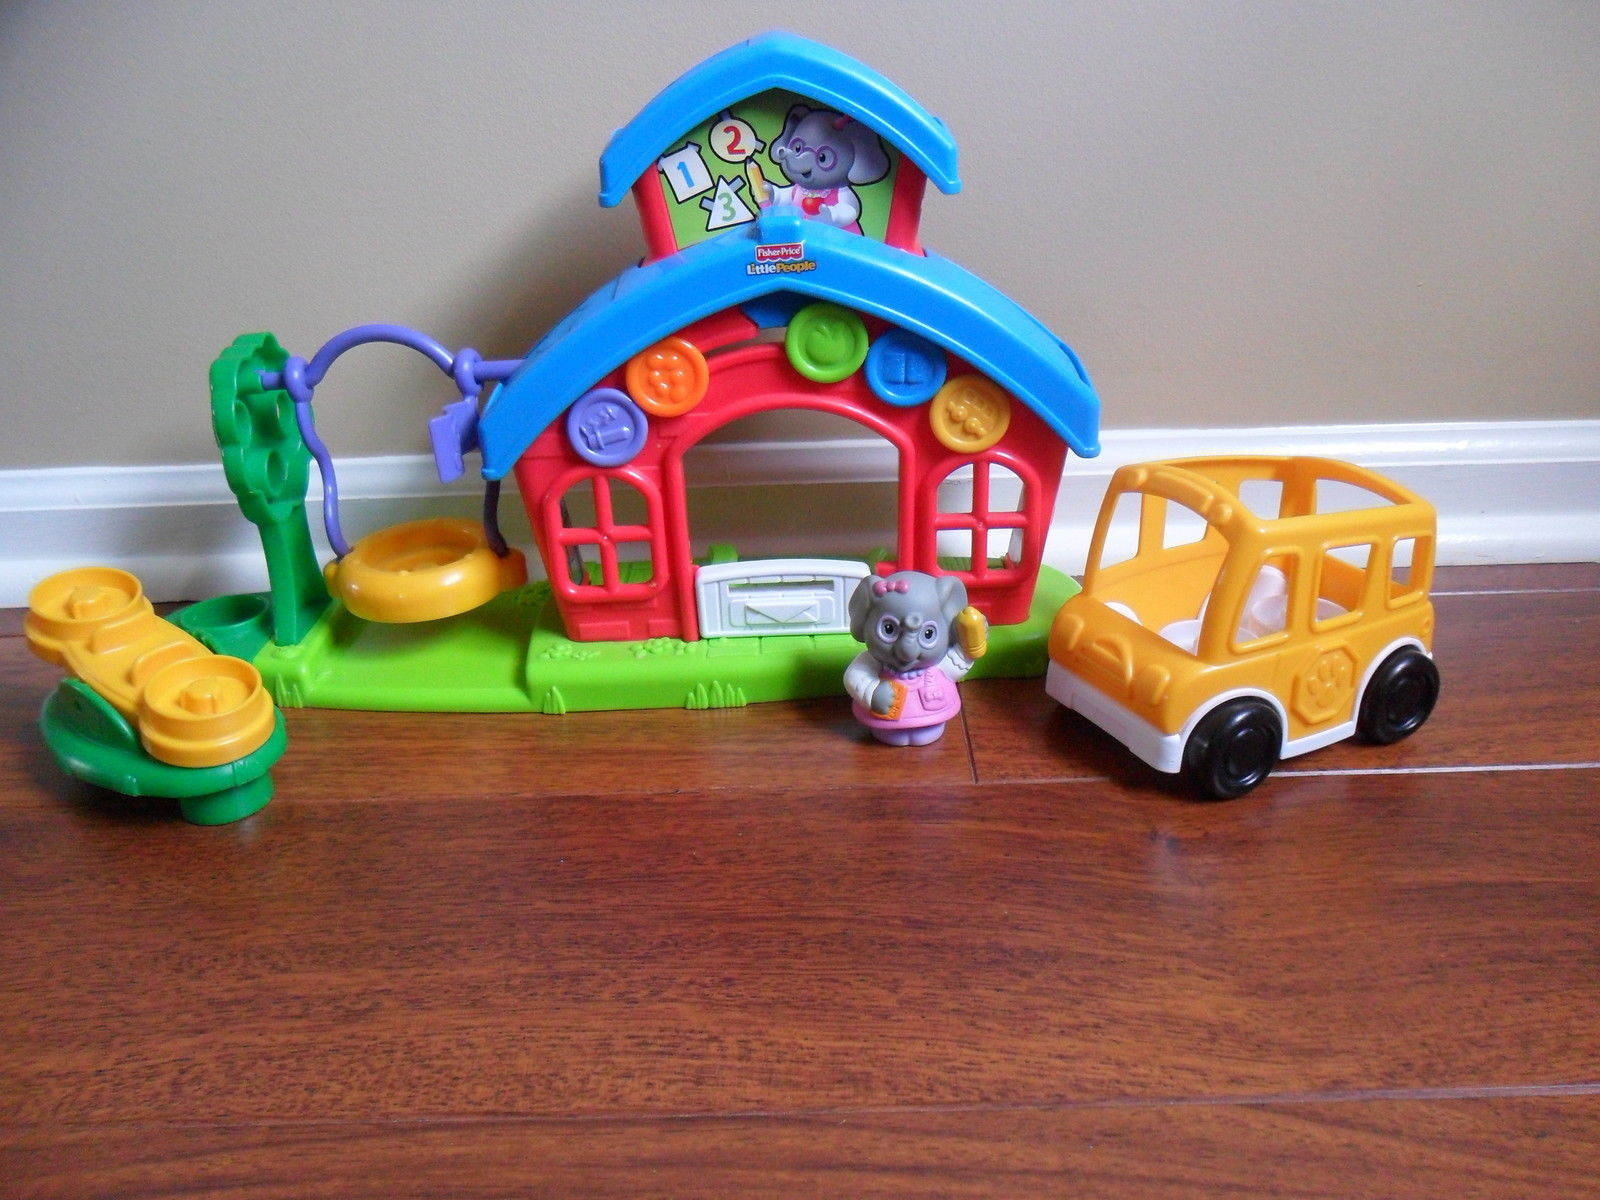 Fisher-Price LITTLE PEOPLE School House P8980 Miss L. Afina's Schoolhouse Set